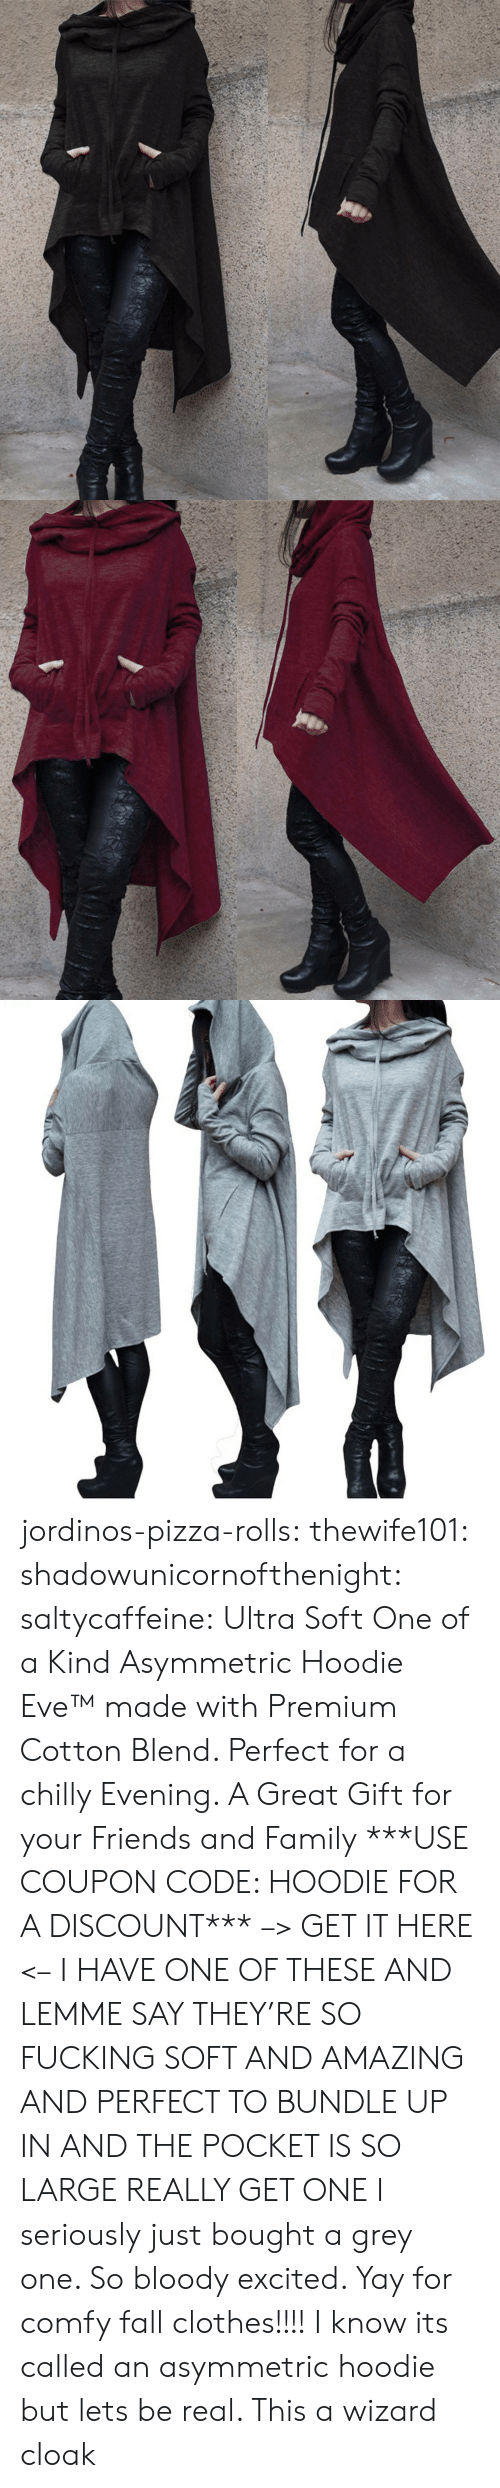 Clothes, Fall, and Family: jordinos-pizza-rolls:  thewife101:  shadowunicornofthenight:  saltycaffeine:  Ultra Soft One of a Kind Asymmetric Hoodie Eve™made with Premium Cotton Blend. Perfect for a chilly Evening. A Great Gift for your Friends and Family ***USE COUPON CODE: HOODIE FOR A DISCOUNT*** –> GET IT HERE <–   I HAVE ONE OF THESE AND LEMME SAY THEY'RE SO FUCKING SOFT AND AMAZING AND PERFECT TO BUNDLE UP IN AND THE POCKET IS SO LARGE REALLY GET ONE   I seriously just bought a grey one. So bloody excited. Yay for comfy fall clothes!!!!    I know its called an asymmetric hoodie but lets be real. This a wizard cloak